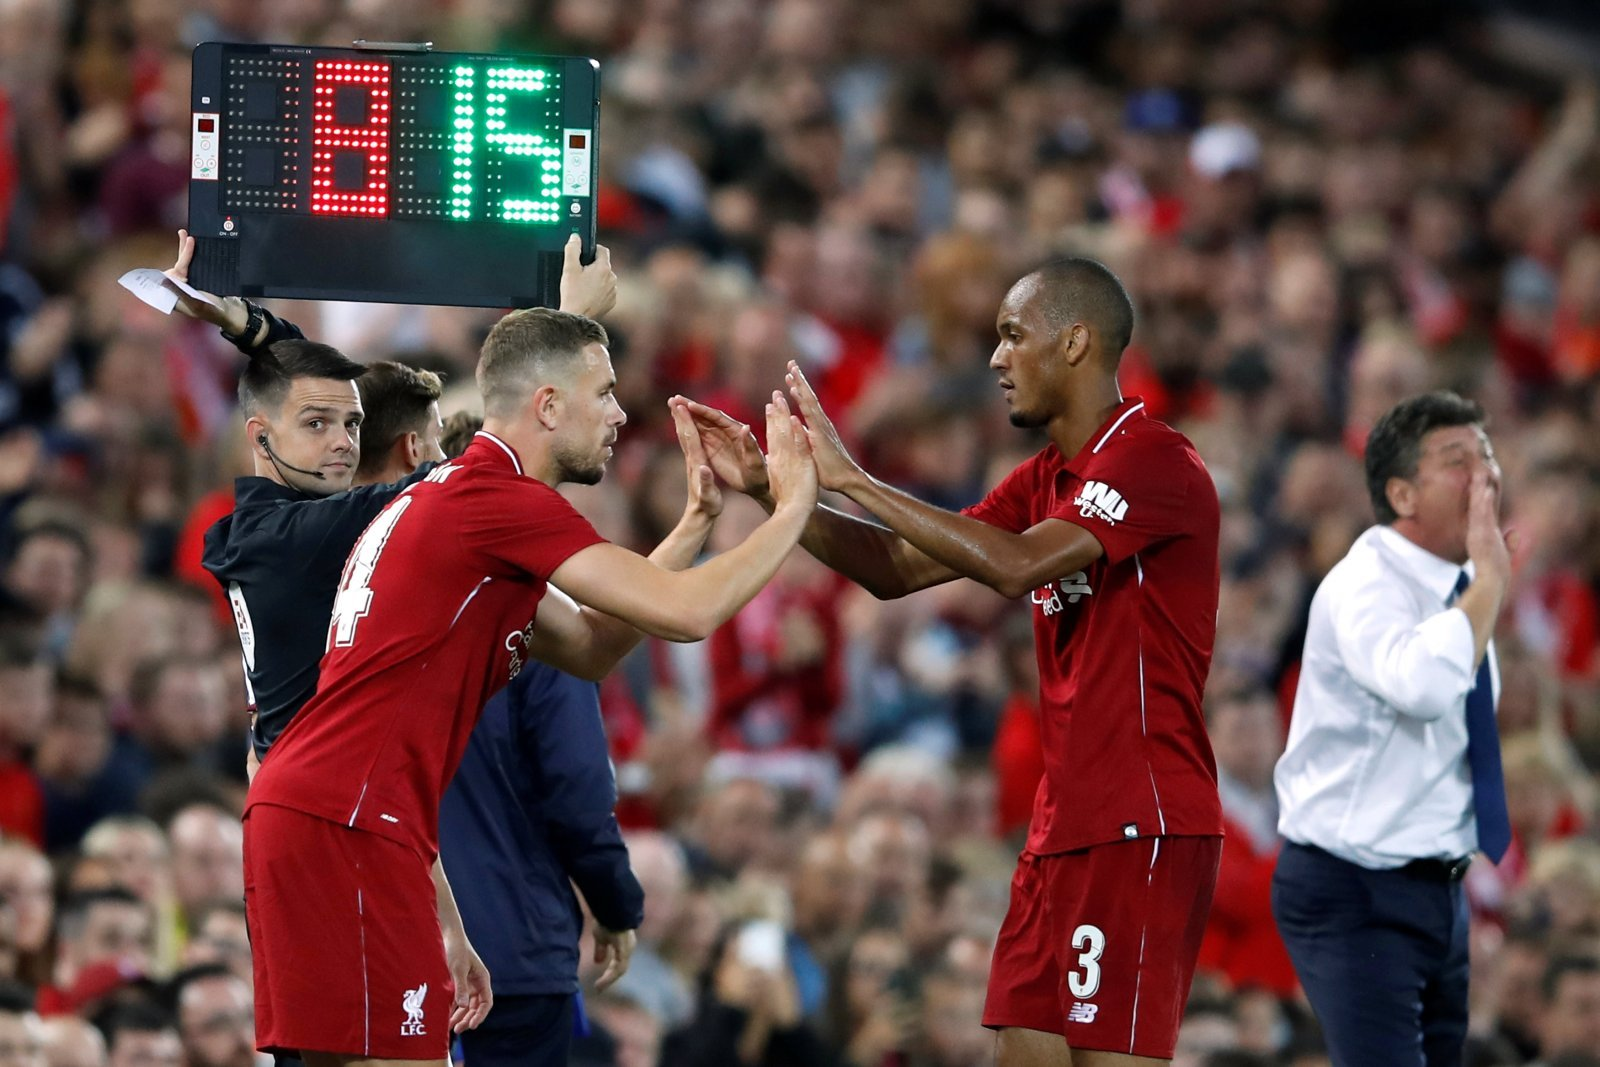 Fabinho is heading in the right direction after impressive display in Manchester United triumph